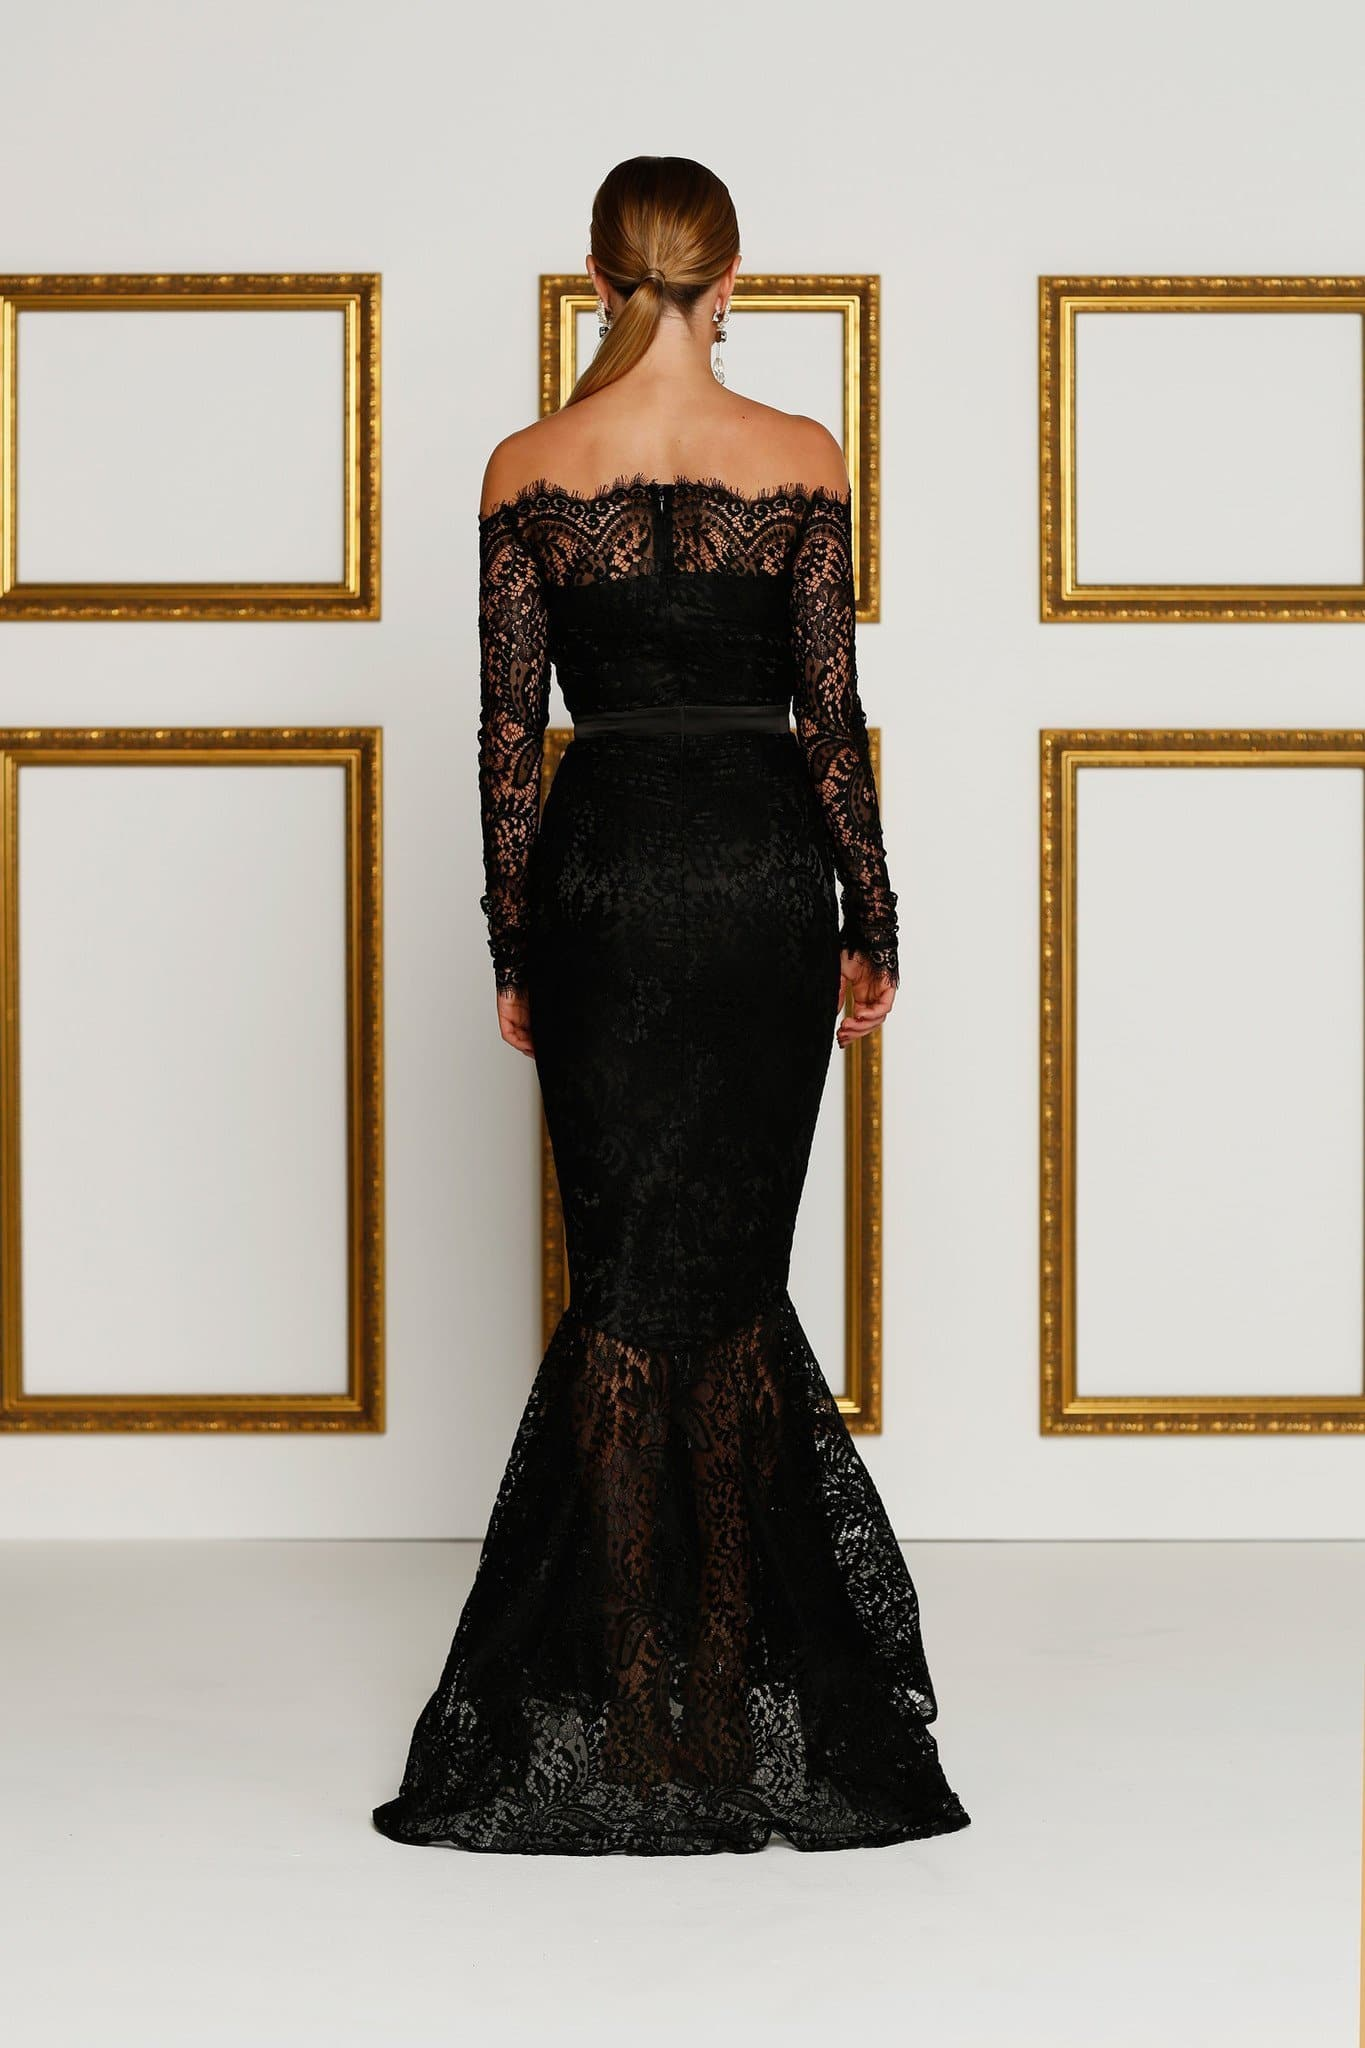 Kamali Gown - Black Lace Off-Shoulder Gown with Mermaid Tail